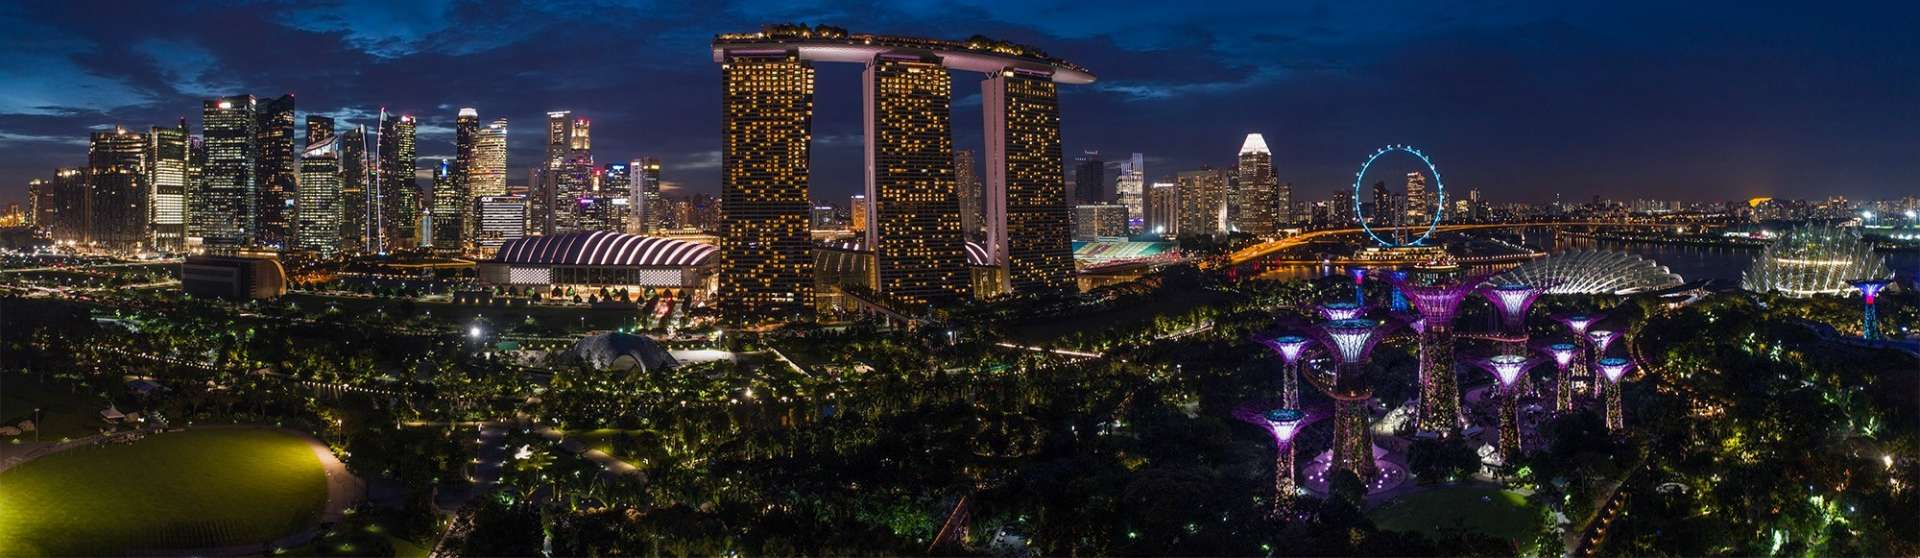 Singapore Pescart Enrico Pescantini Gardens by the Bay Marina Bay Sands nightscape drone